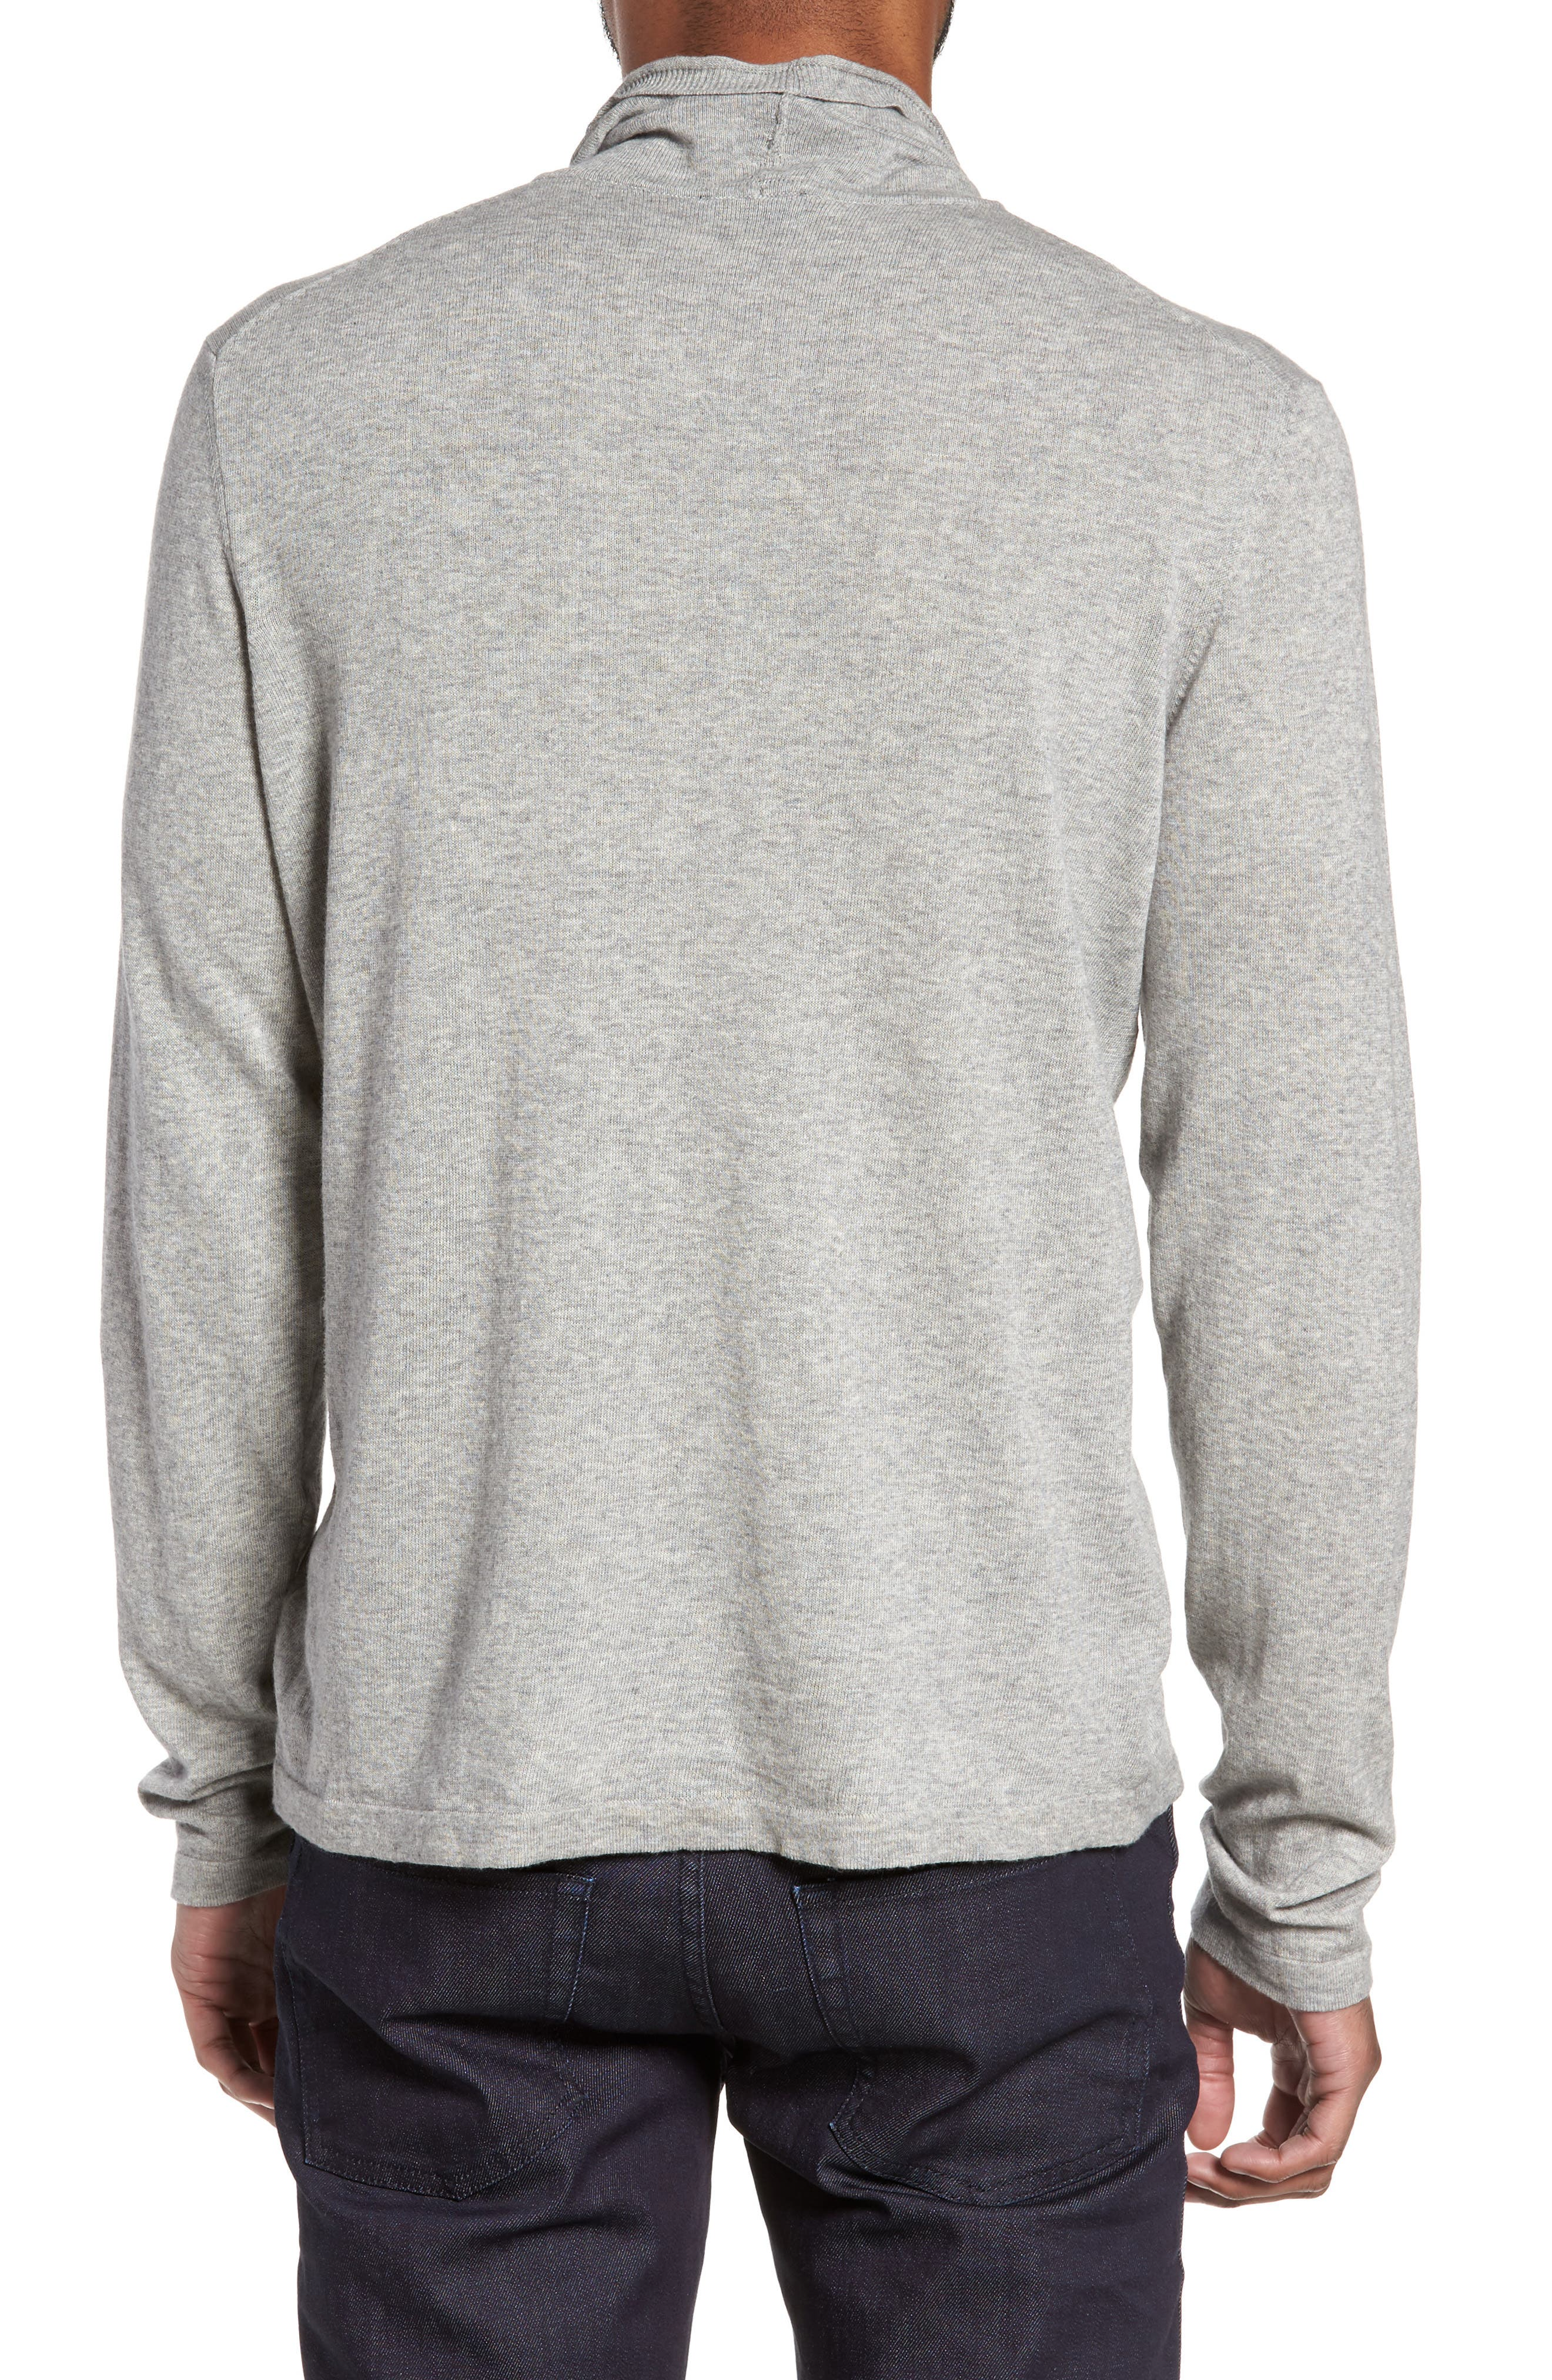 Hess Wool Turtleneck Sweater,                             Alternate thumbnail 2, color,                             Light Grey